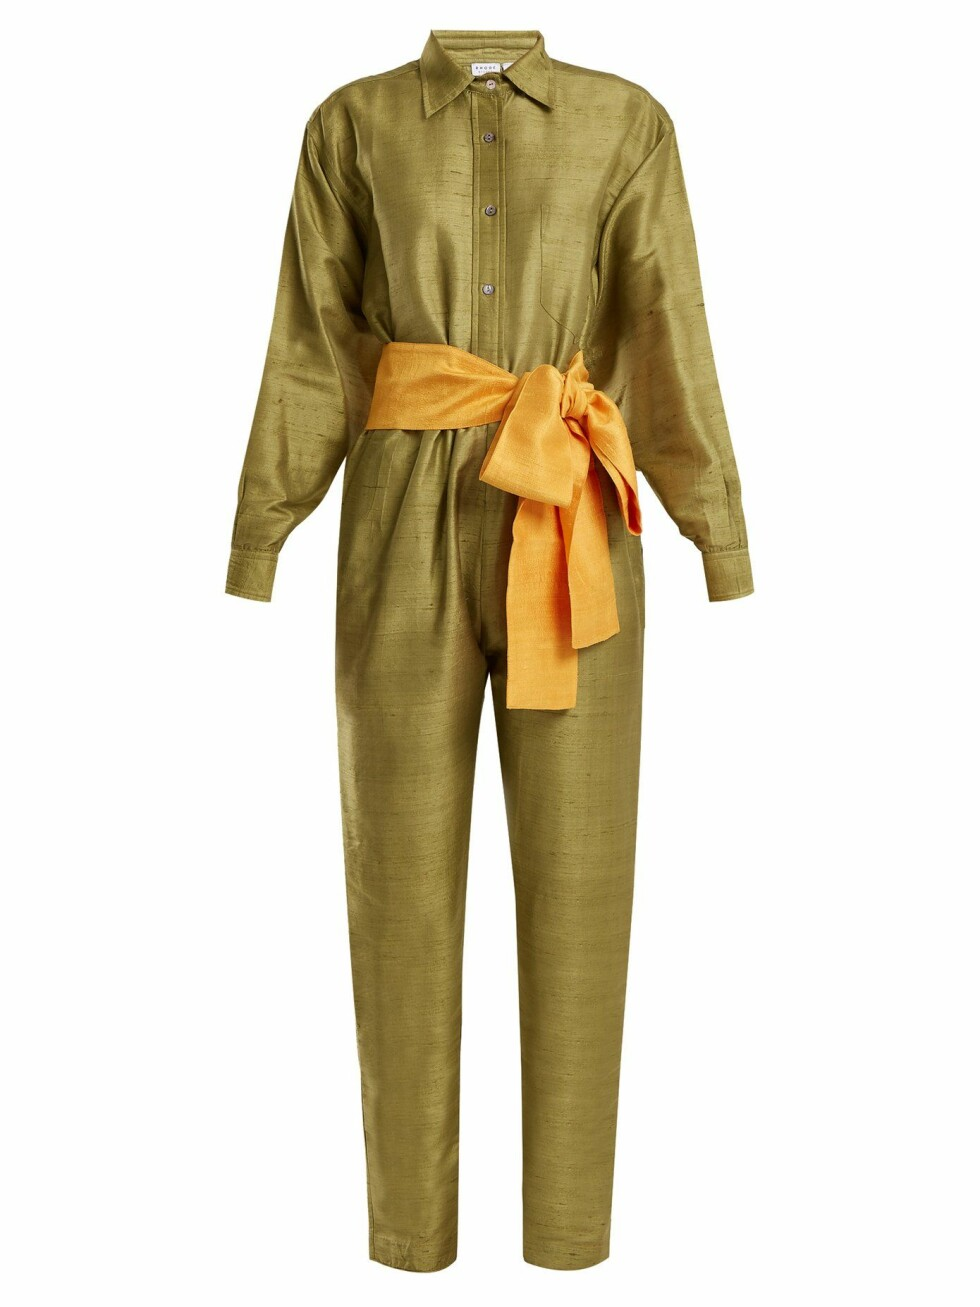 <strong>Jumpsuit fra Rhode Resort |1500,-| https:</strong>//www.matchesfashion.com/intl/products/Rhode-Resort-Tara-silk-jumpsuit-1183029